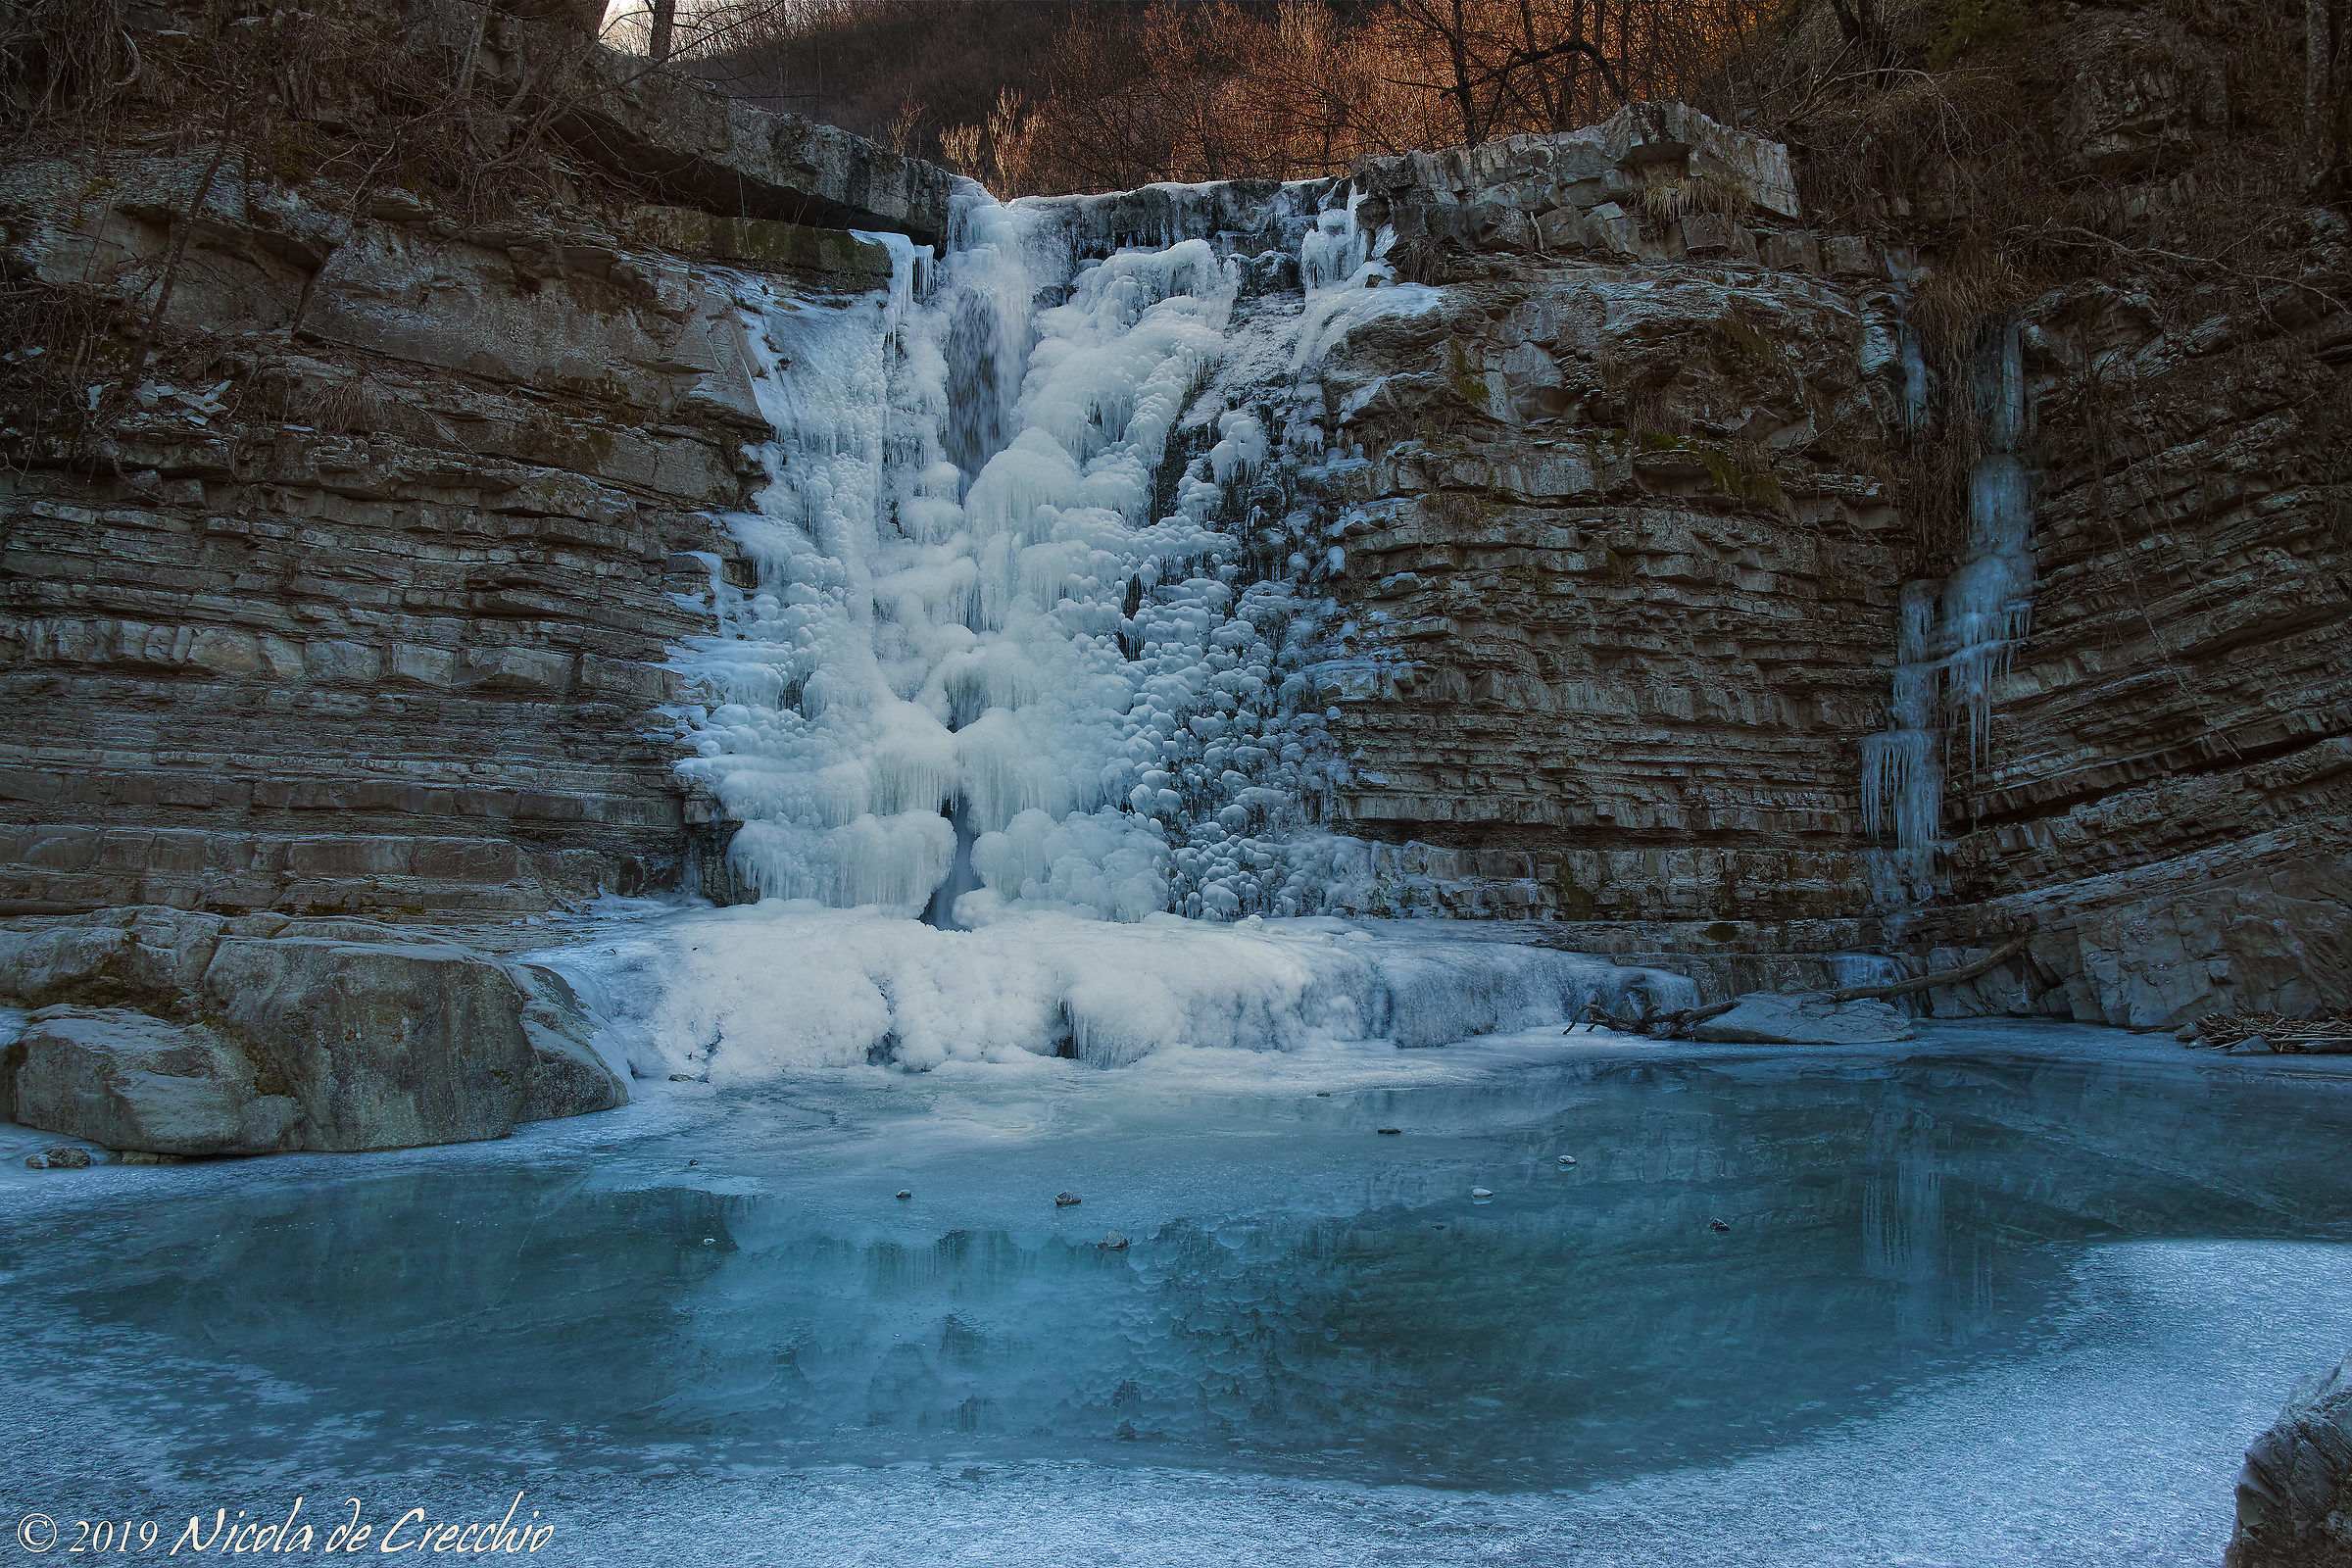 The second glacial waterfall of the Perino...